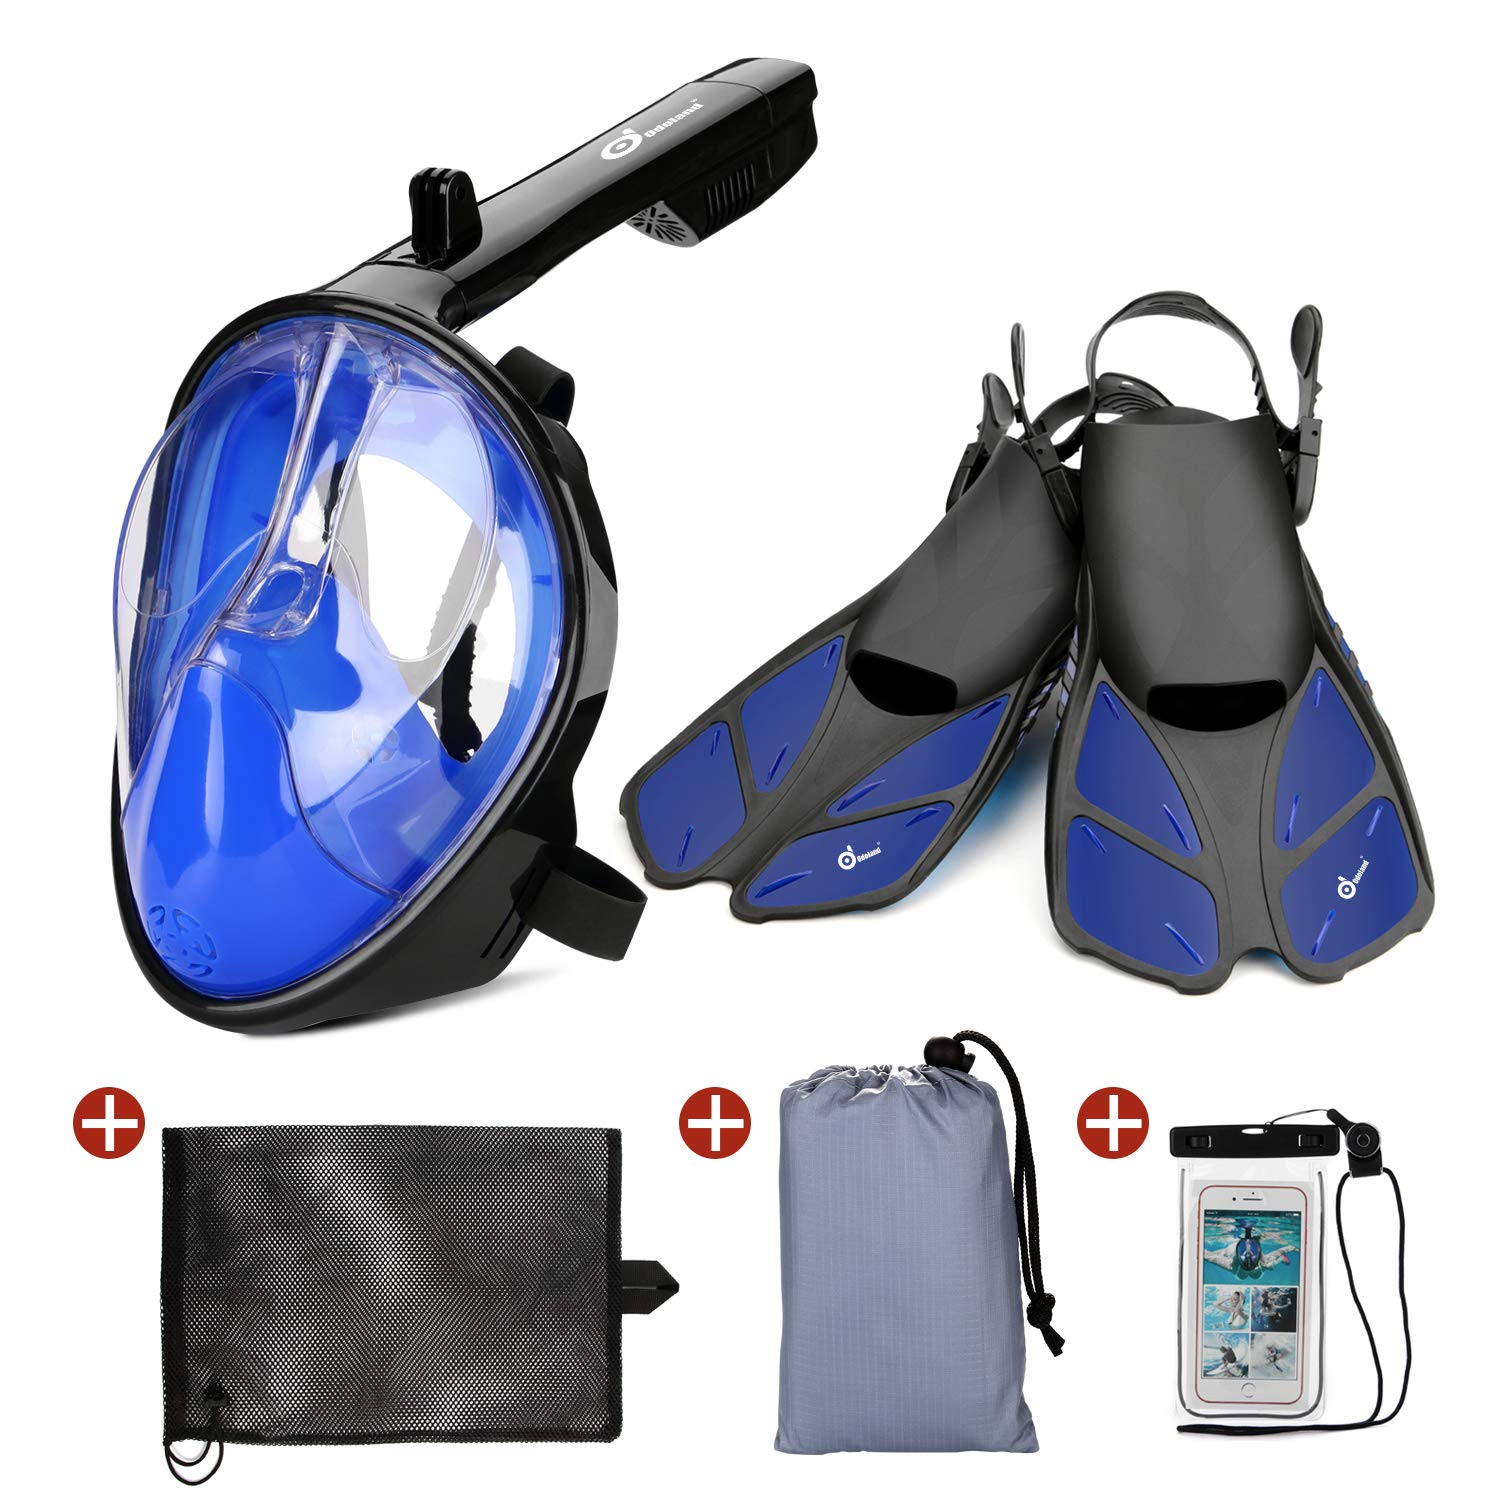 Odoland 5-in-1 Snorkeling Packages, Full Face Snorkel Mask with Adjustable Swim Fins and Lightweight Mesh Bag and Waterproof Case and Beach Blanket - GoPro Compatible